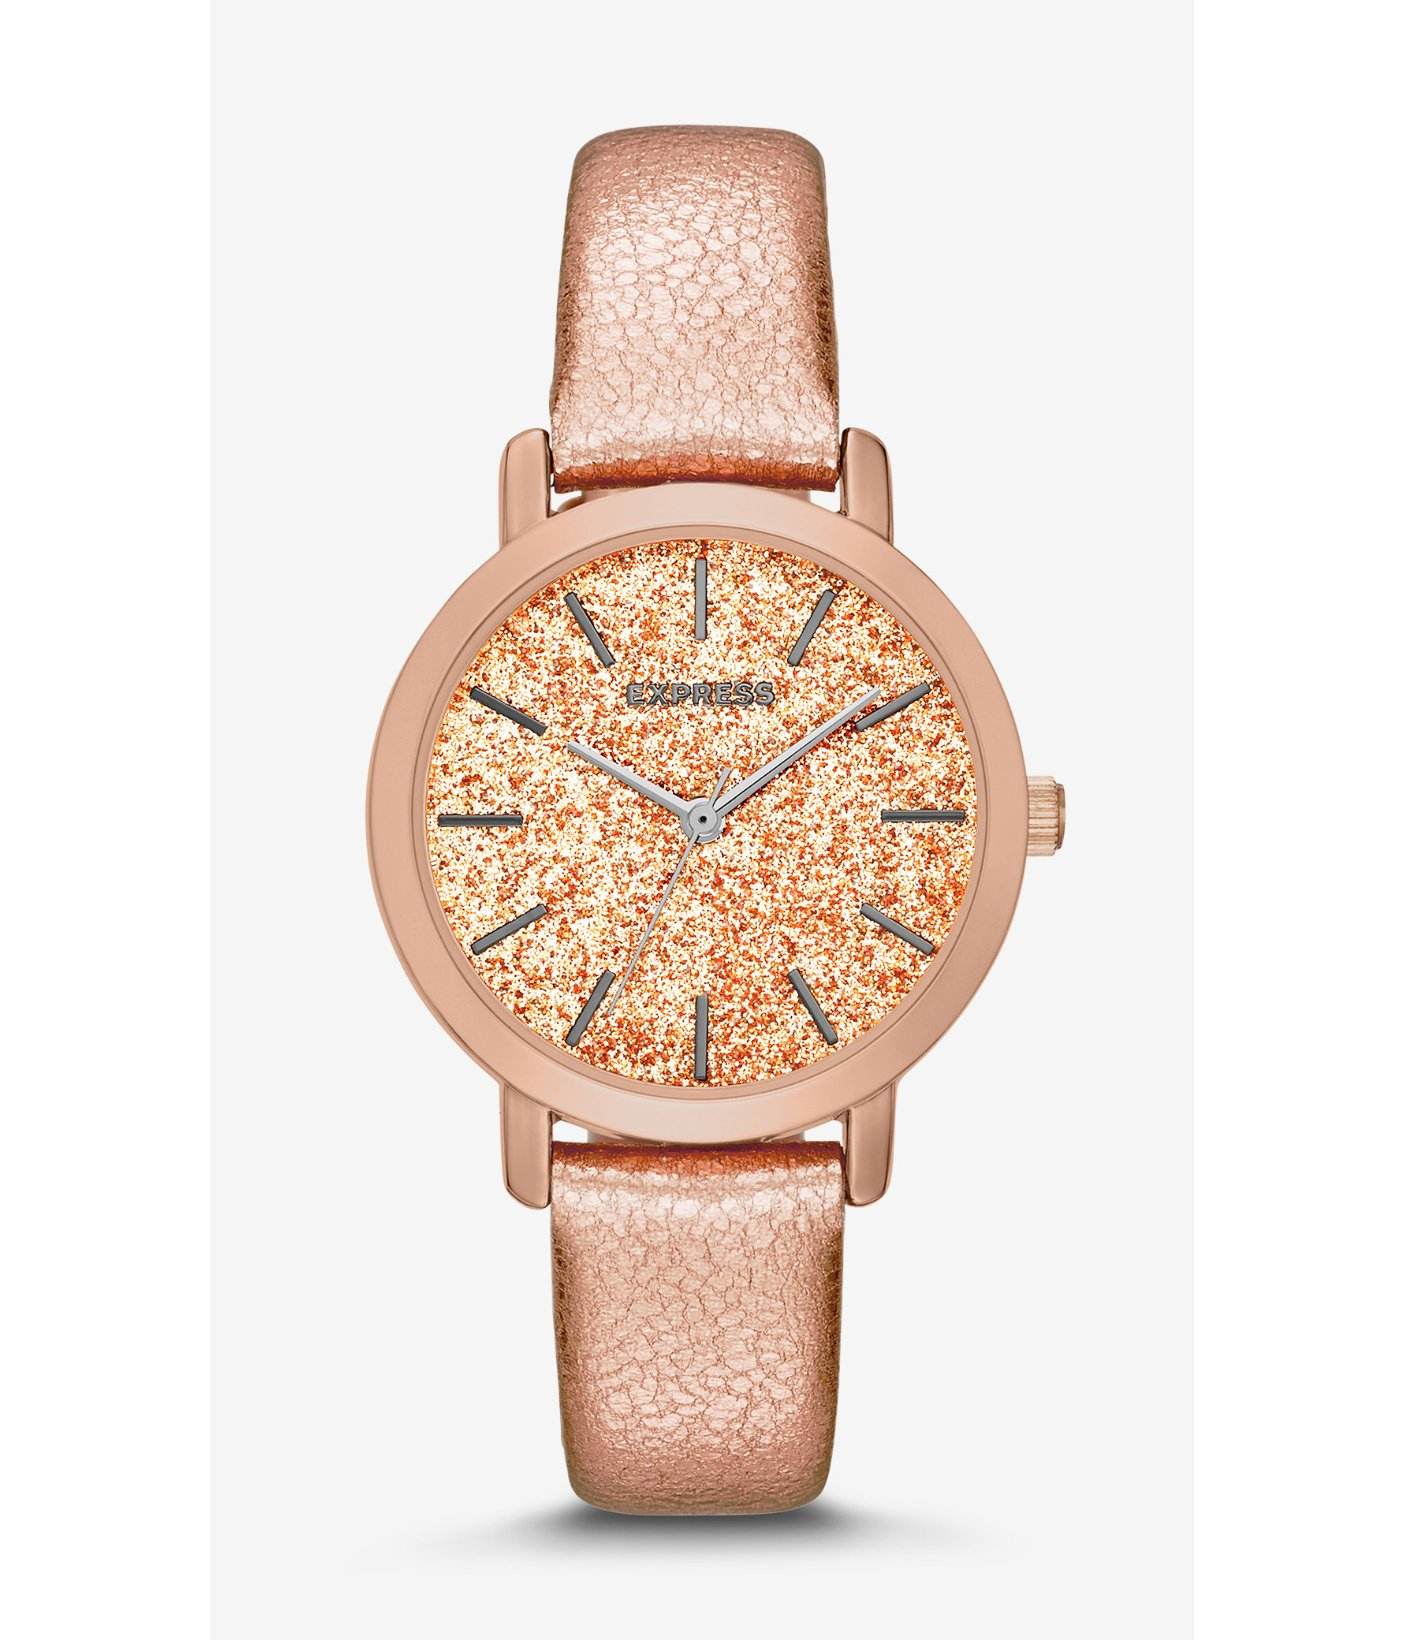 Express Sparkle Dial Rose Gold Leather Strap Watch in ...